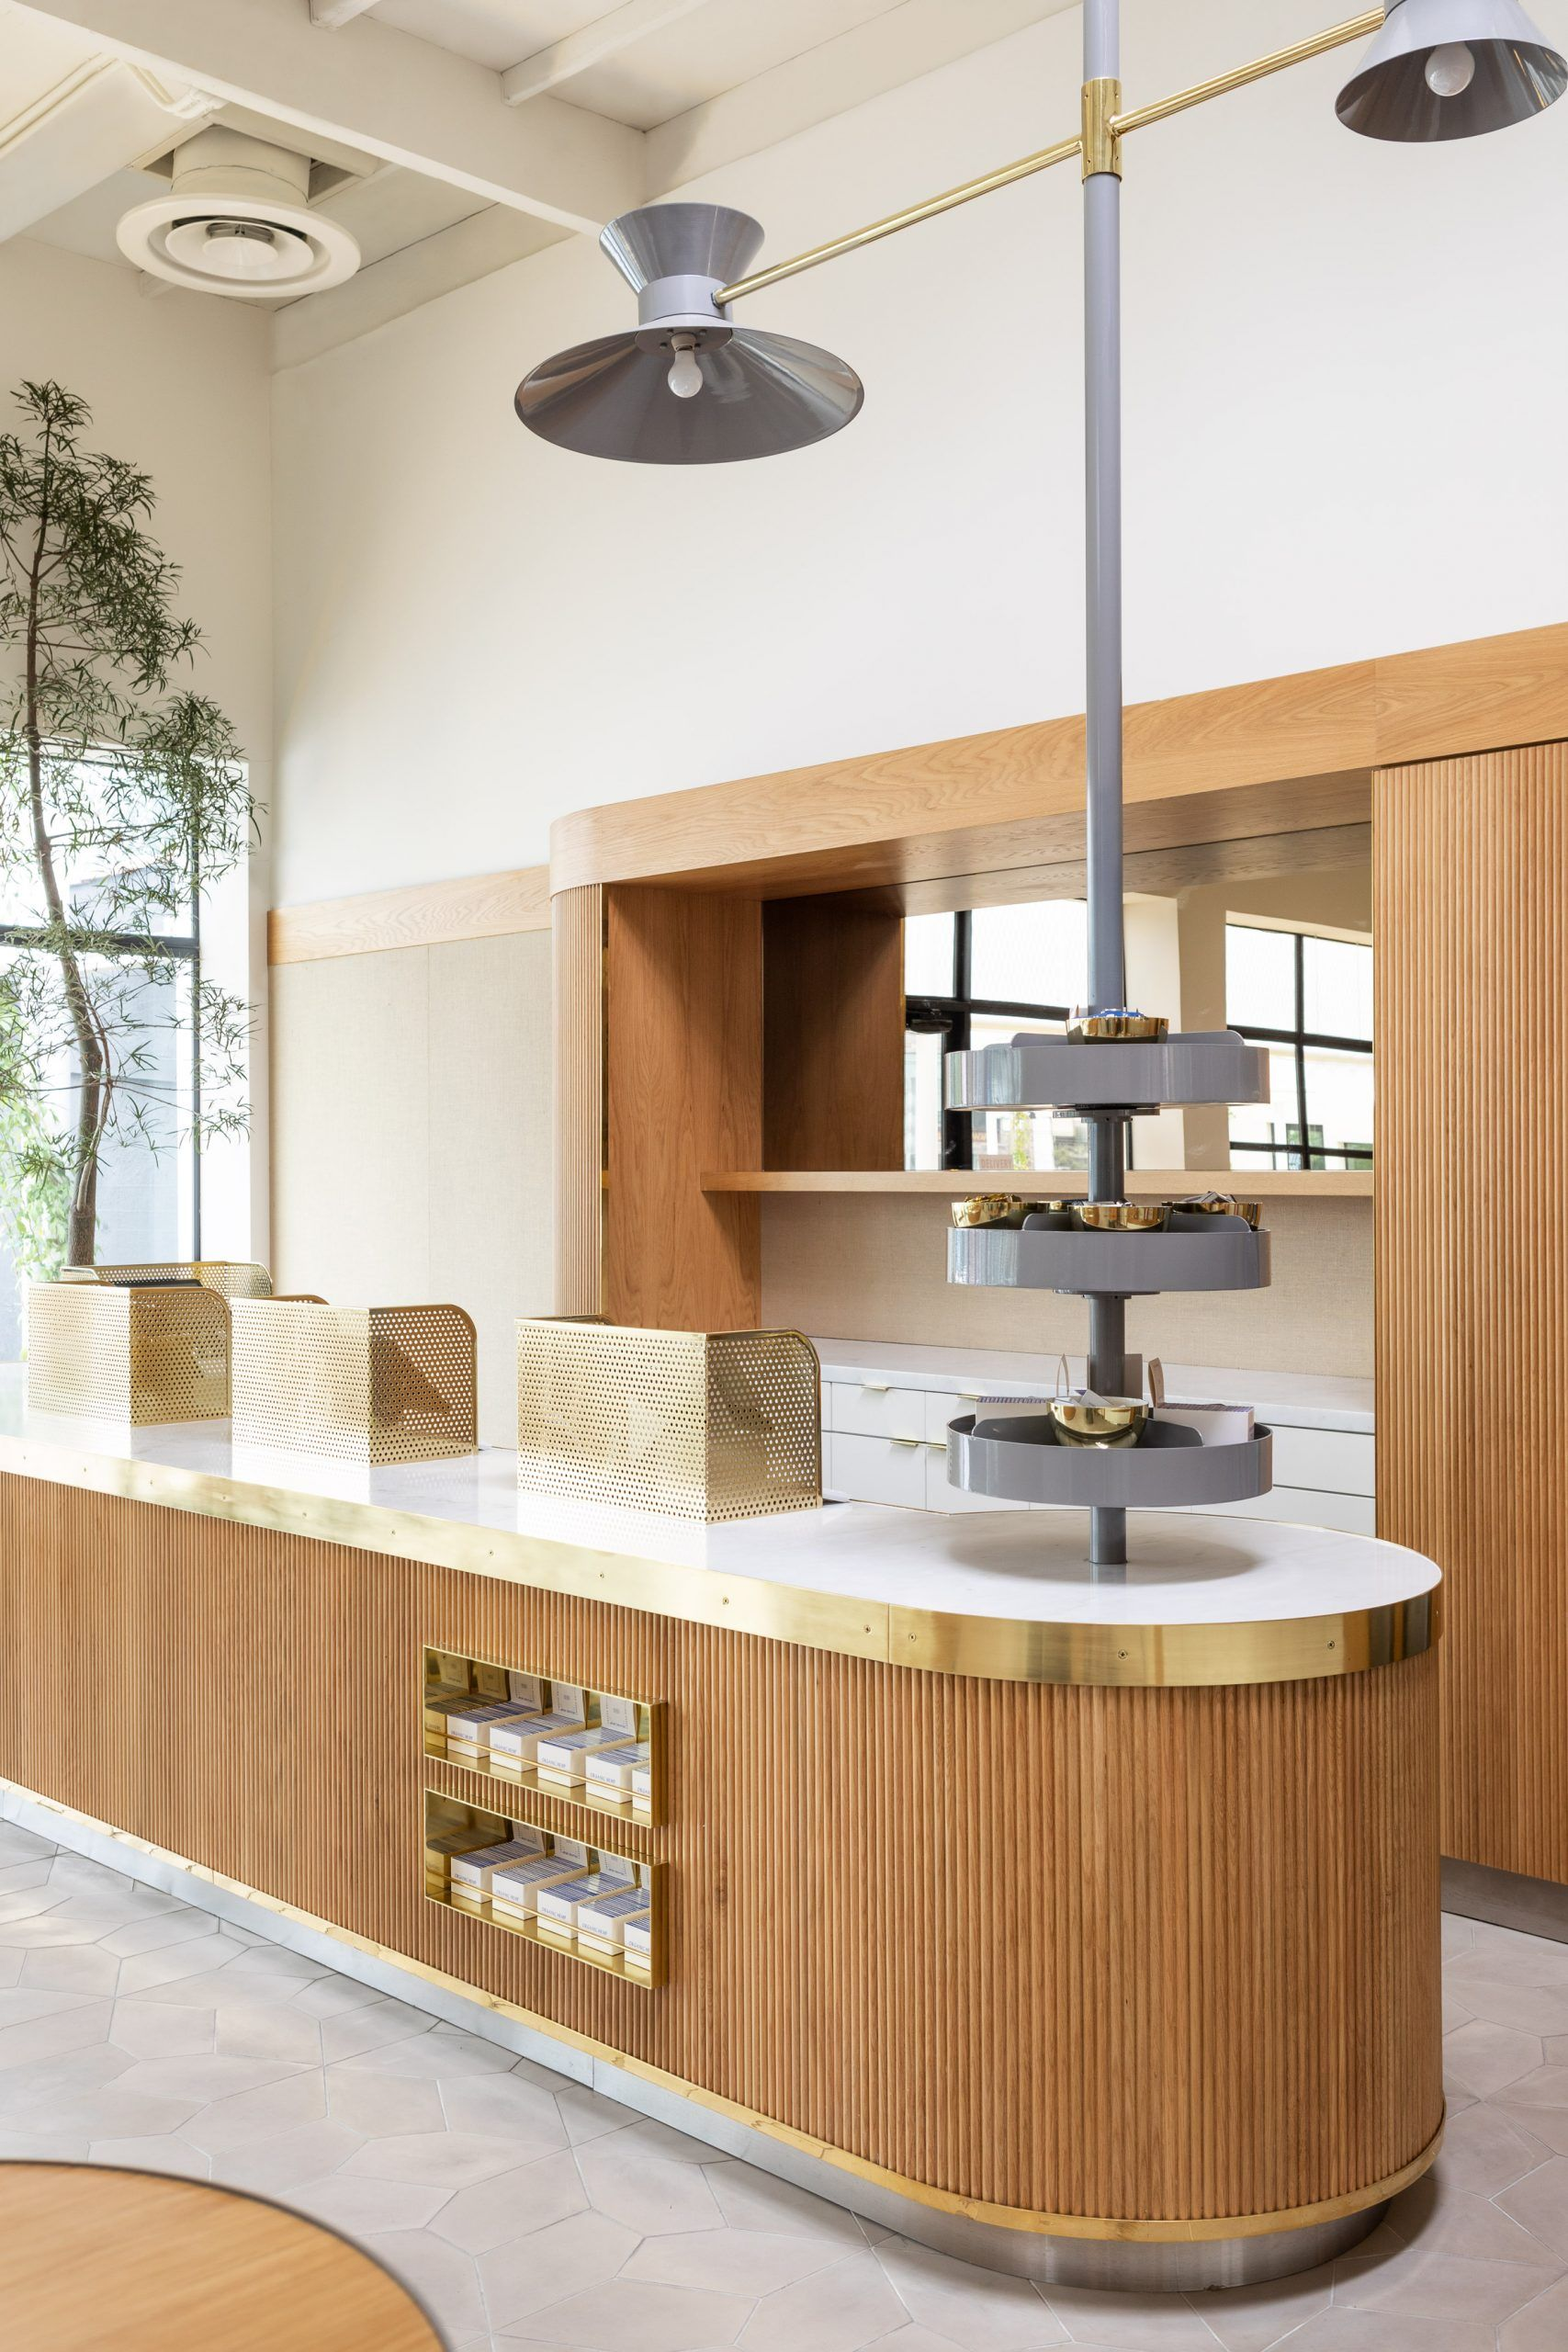 Commune designs Los Angeles dispensary to be airy and